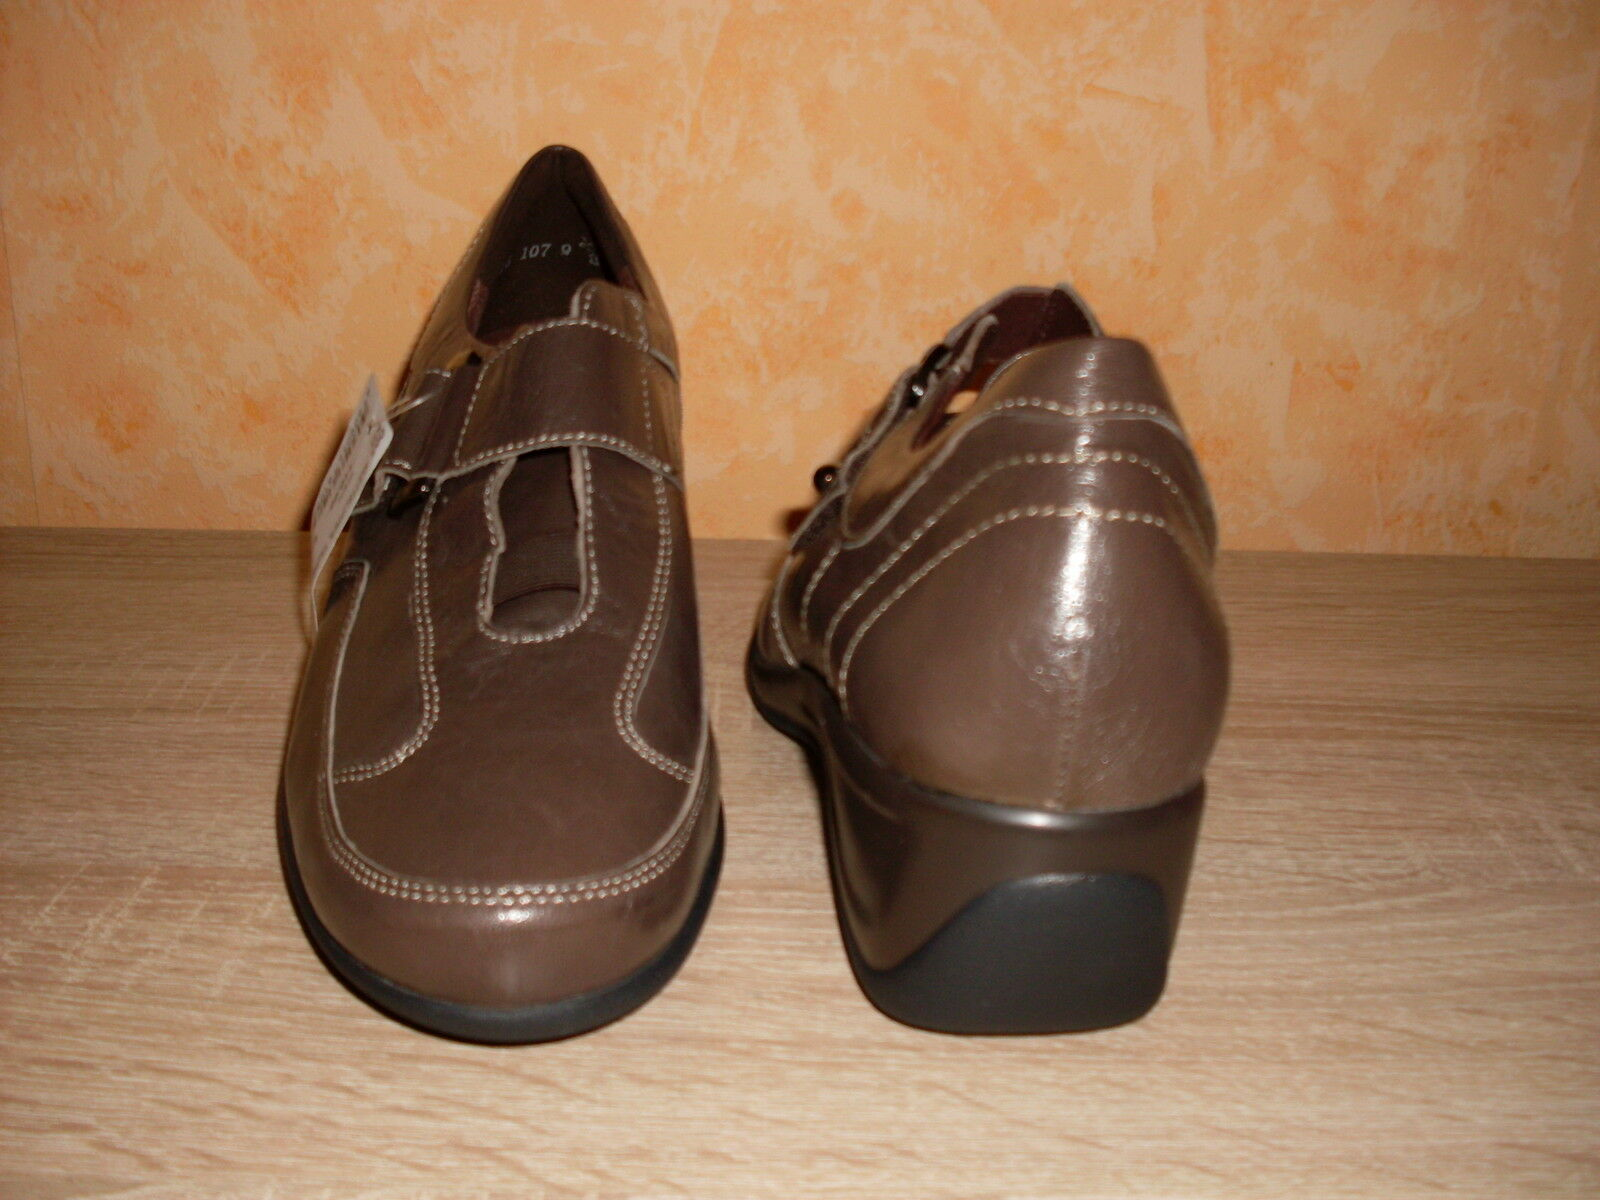 Theresia NEU M. HARLET Edle Klettslipper NEU Theresia Gr. 8,5 42,5 G in taupe & Lackleder ab10ce